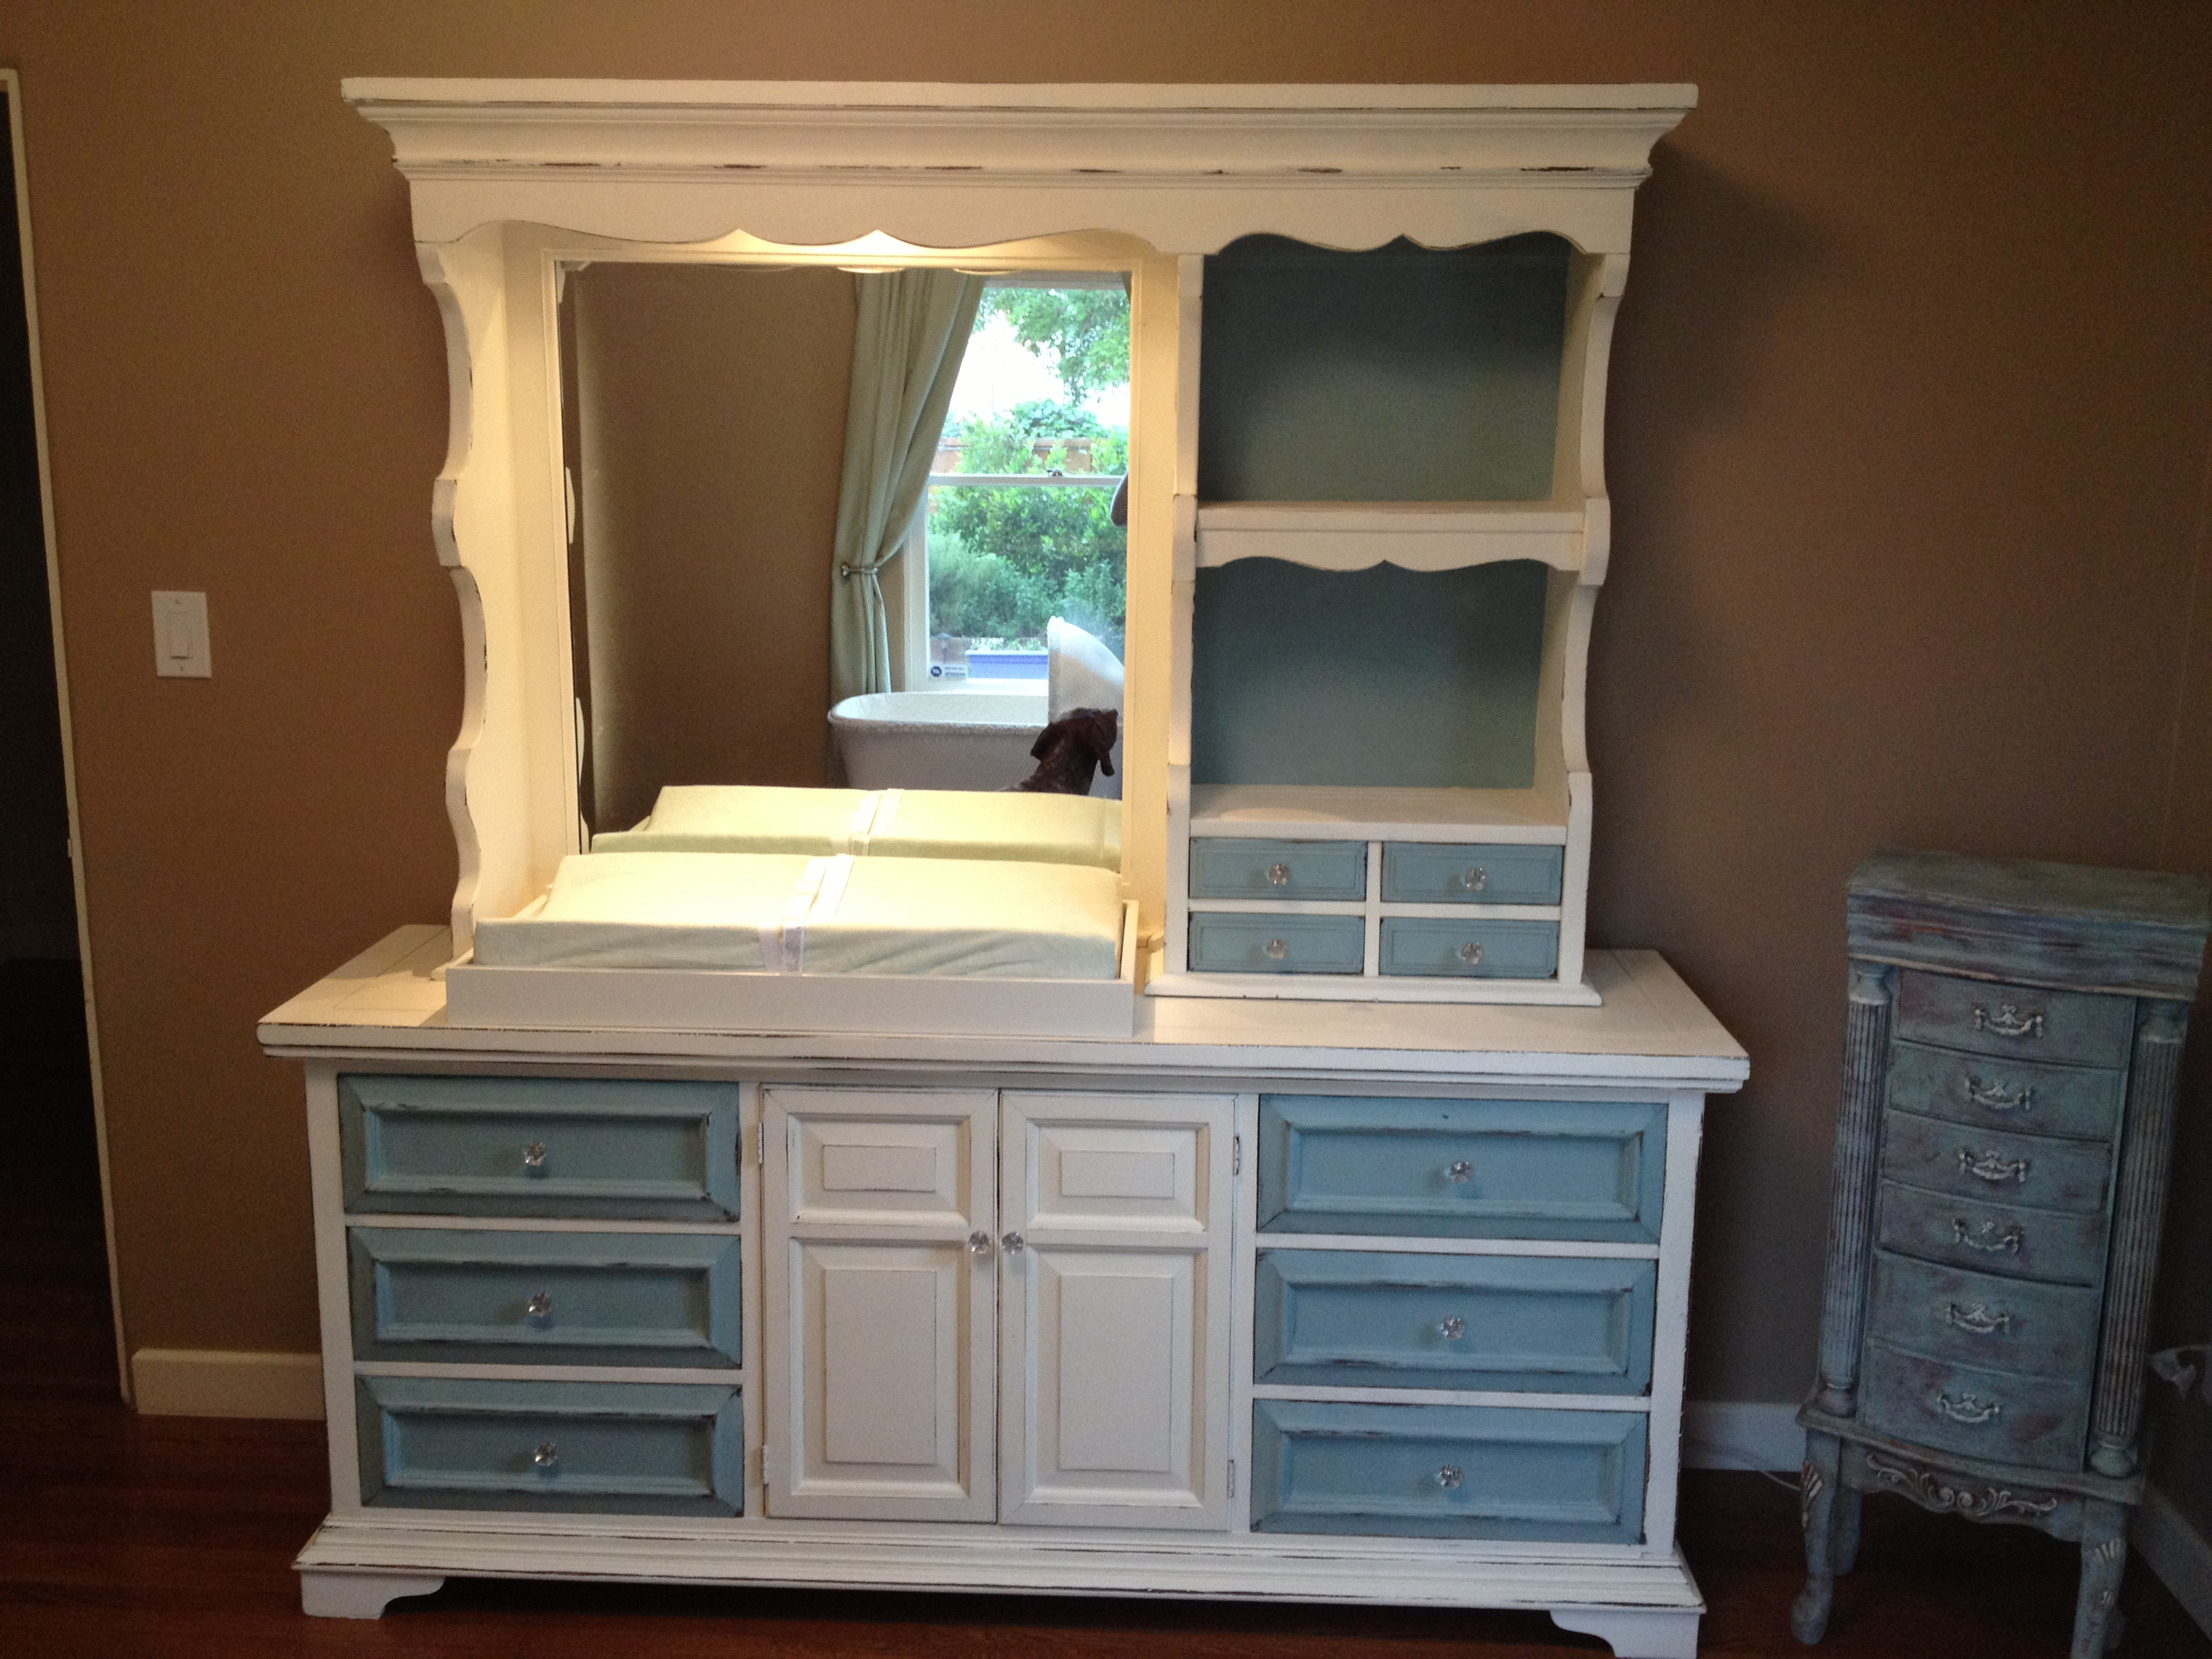 Before and After Furniture Makeovers - Christina Faye ... |Repurposed Furniture Before And After